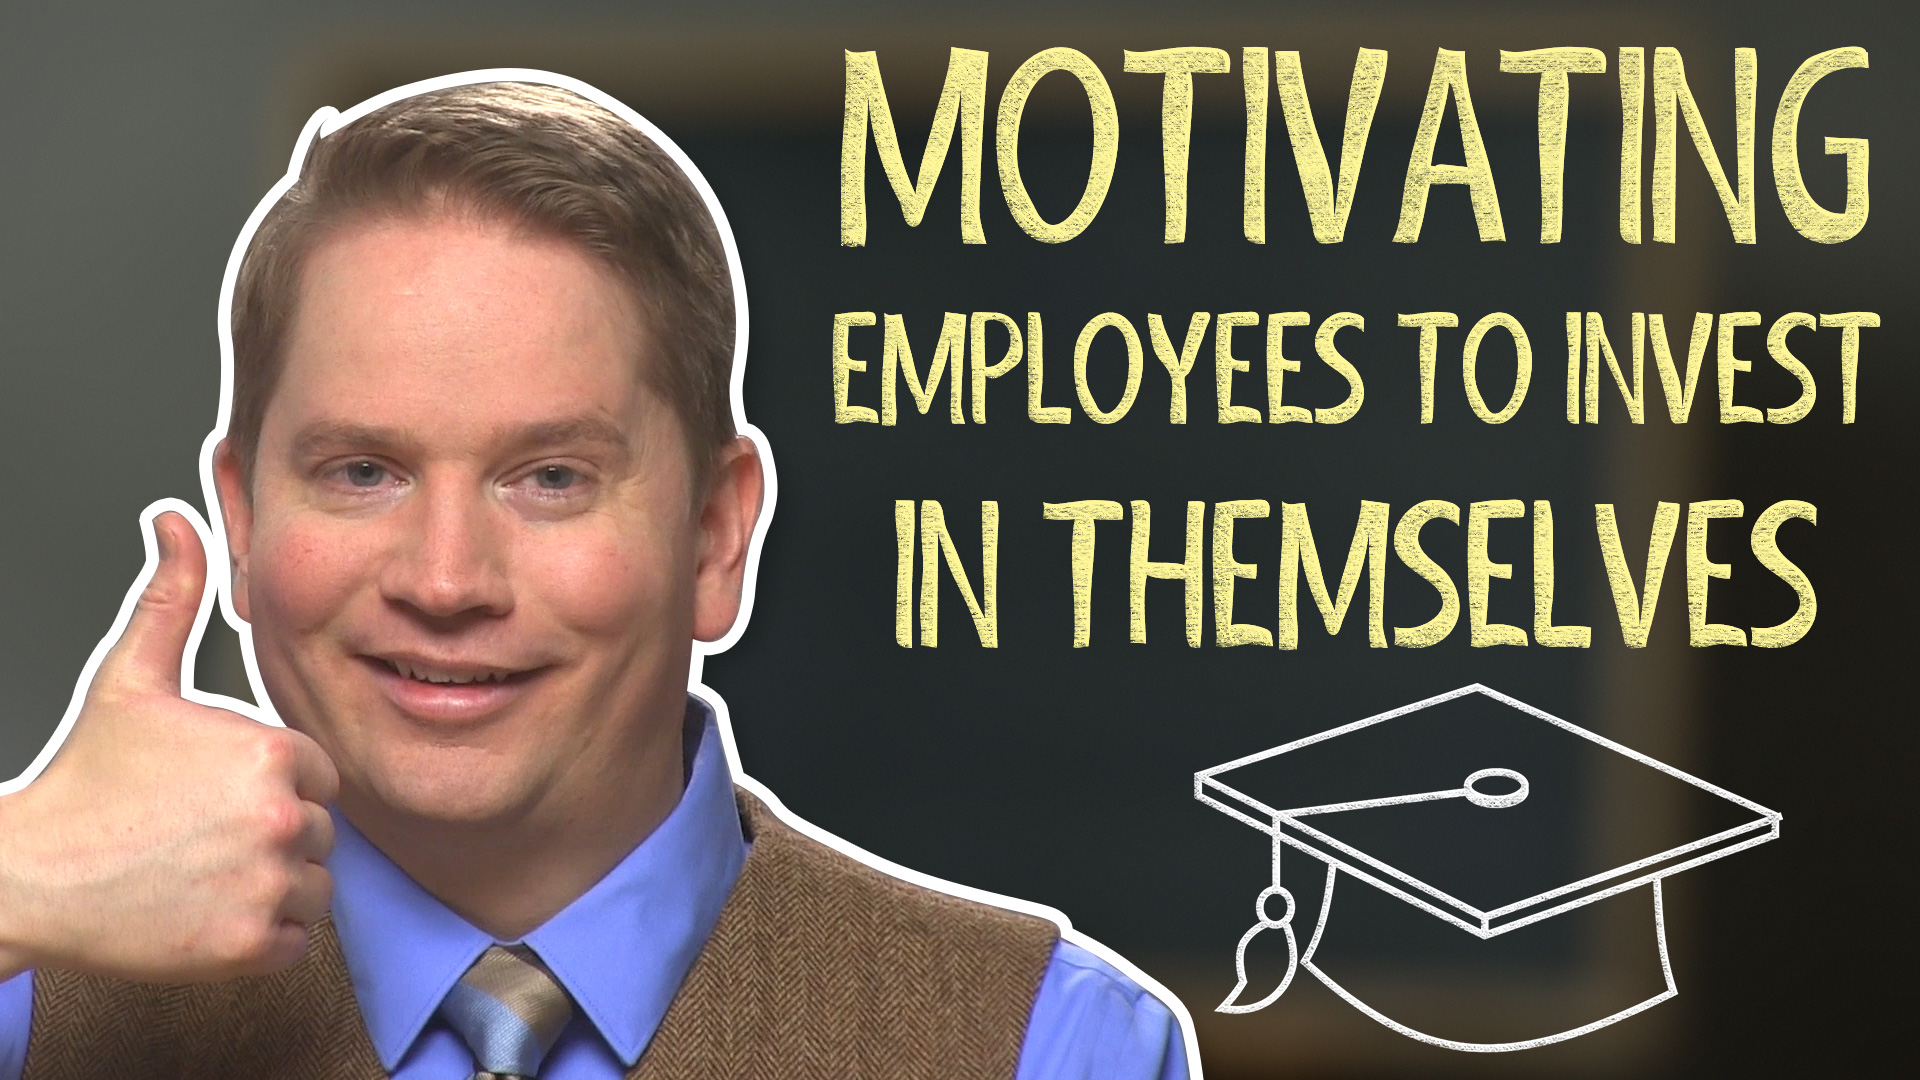 what motivate employees The top 5 methods for motivating your employees  if you're a business owner, manager or supervisor, you know how important it is to have workers who are highly motivated.